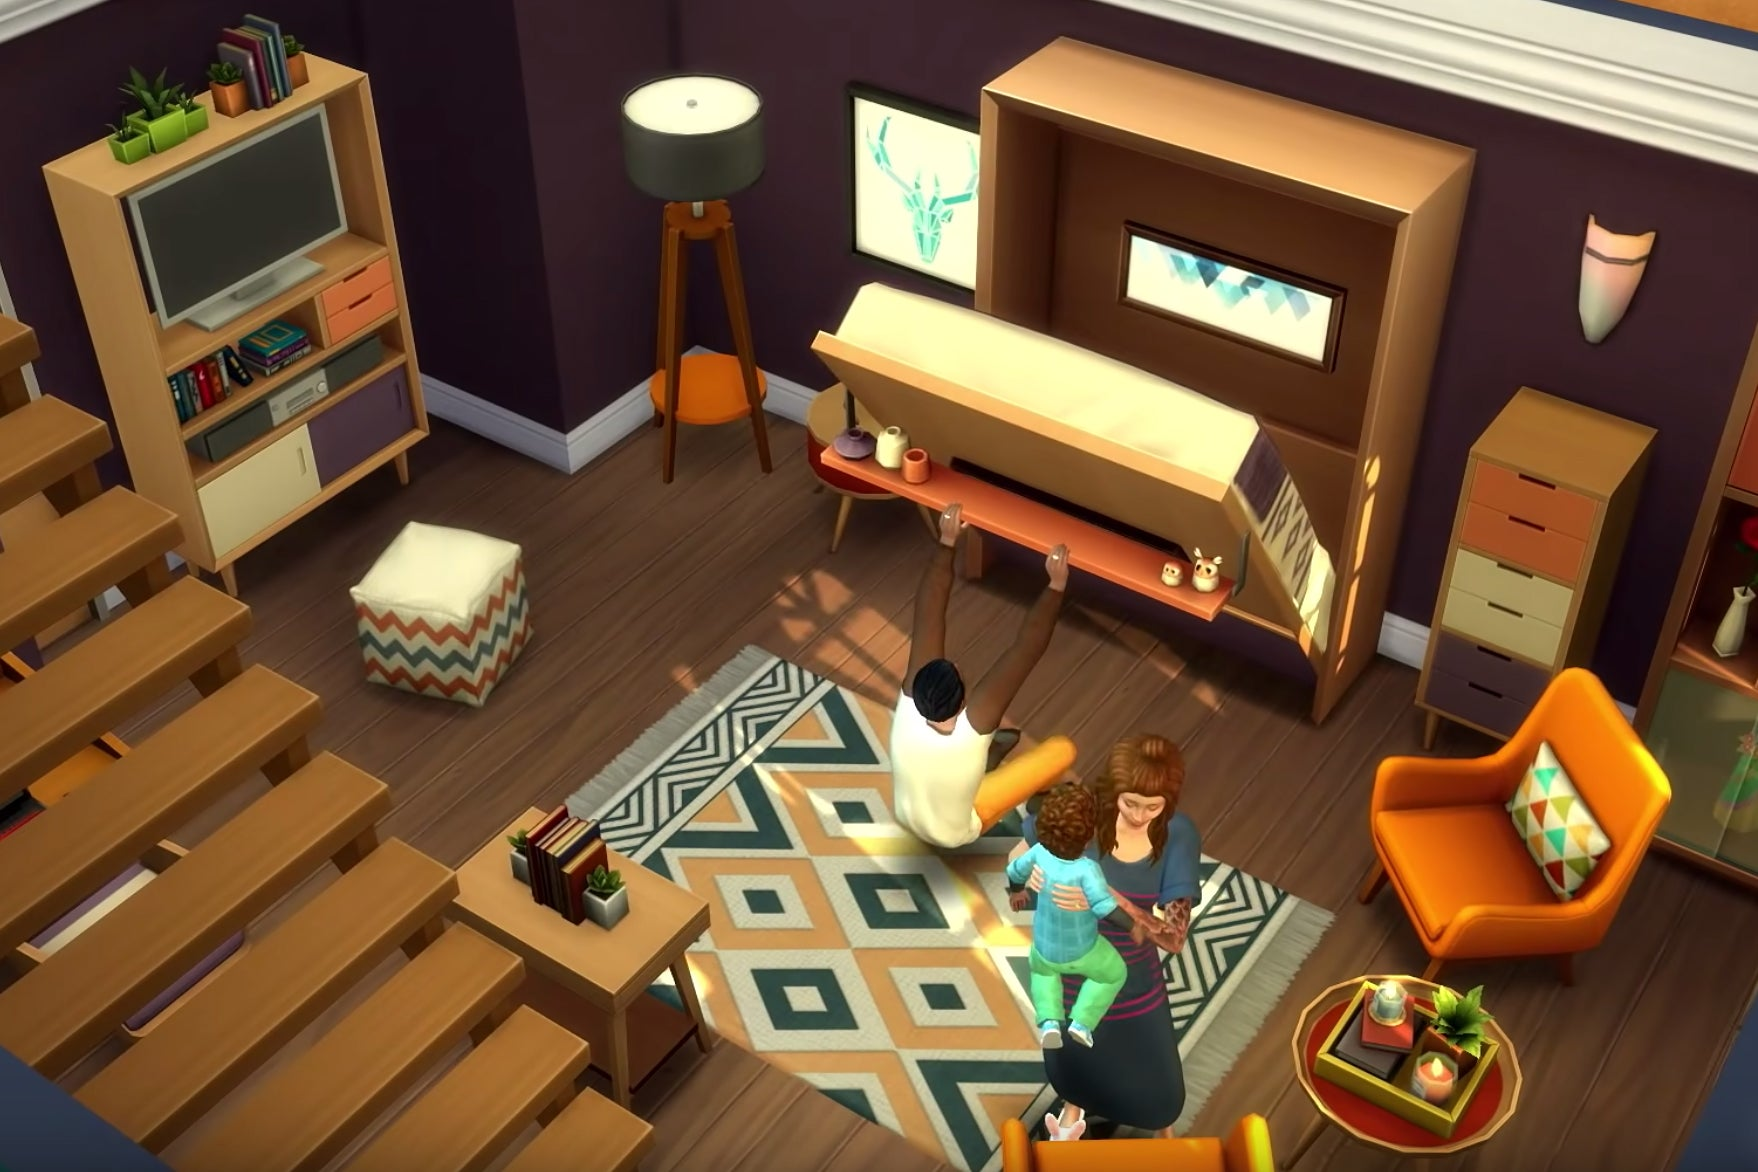 Sims interior with murphy bed and colorful cabinets